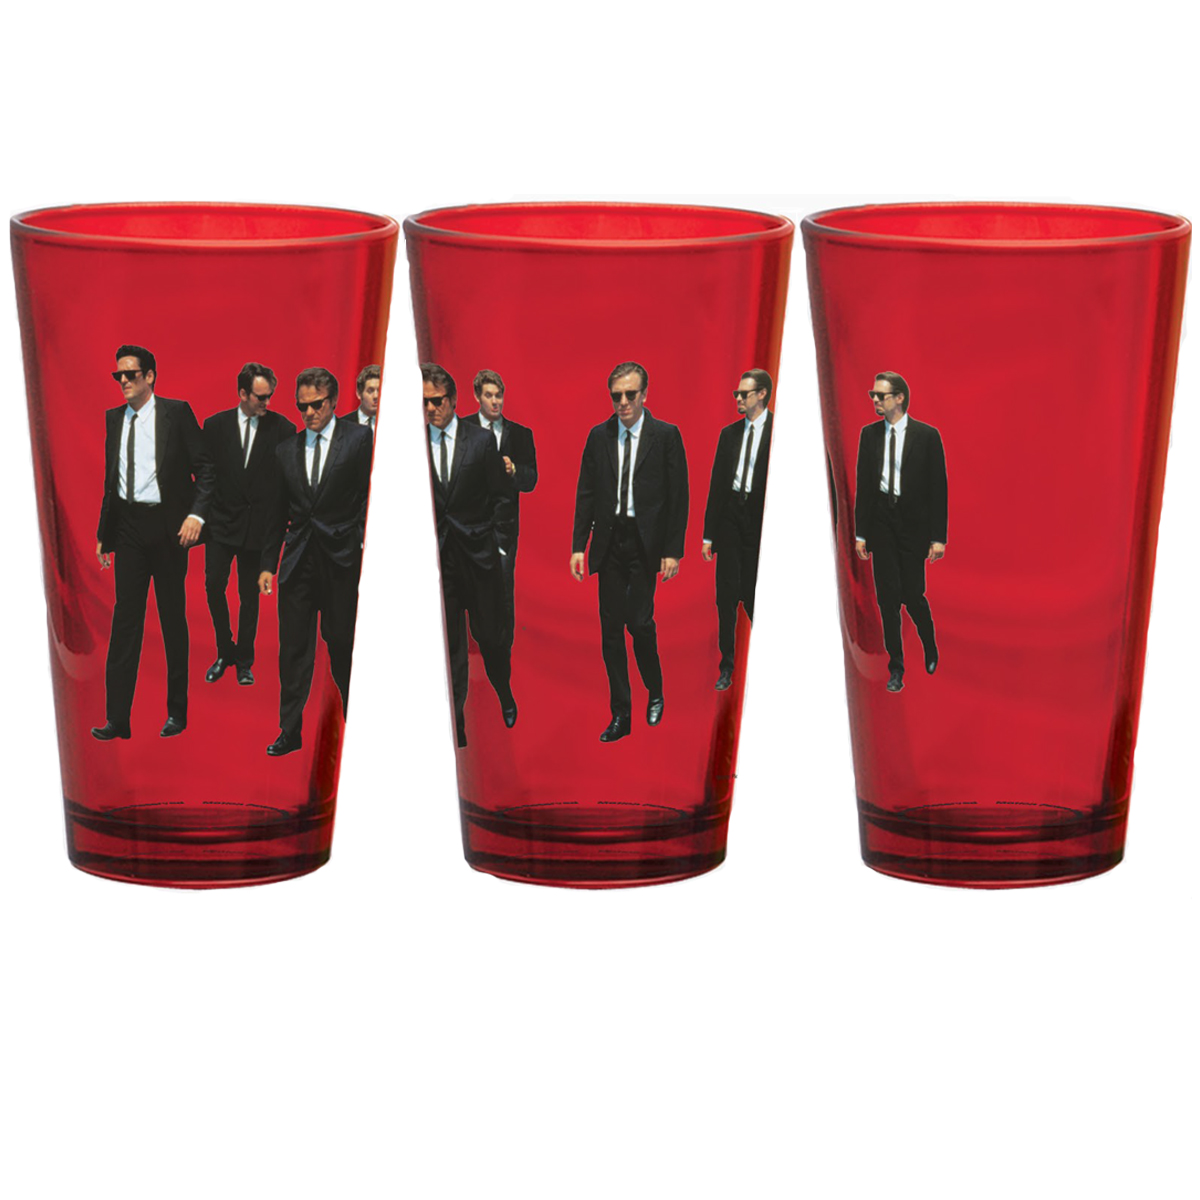 Reservoir Dogs The Walk Pint Glass